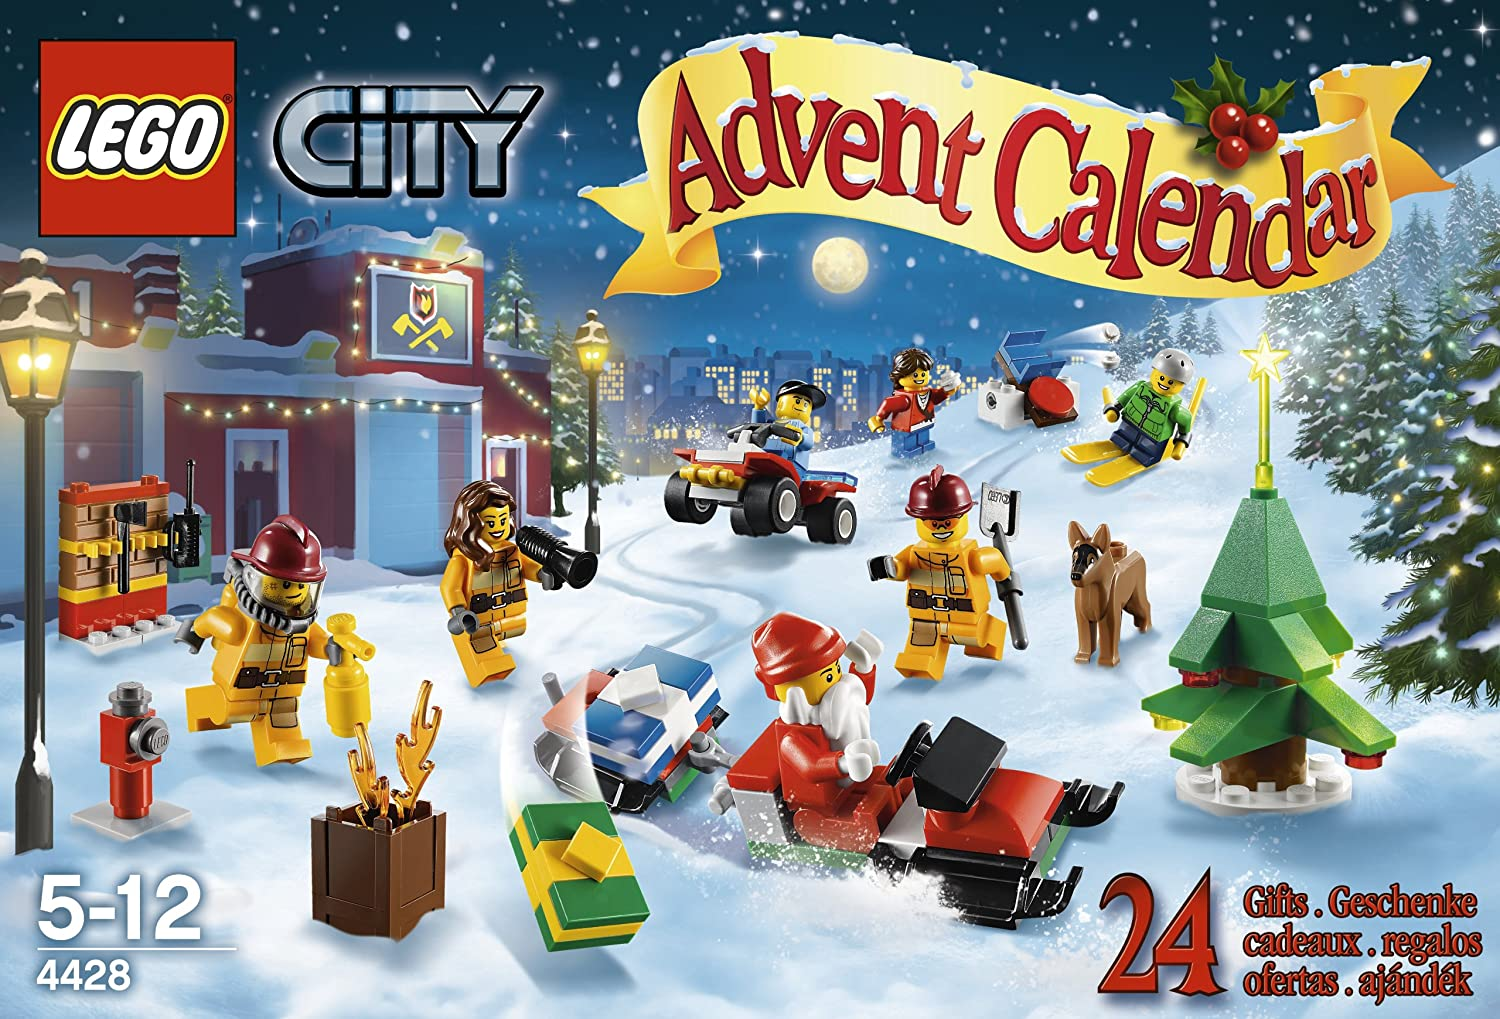 Top 3 Best Christmas Countdown Advent Calendars for Kids 2013